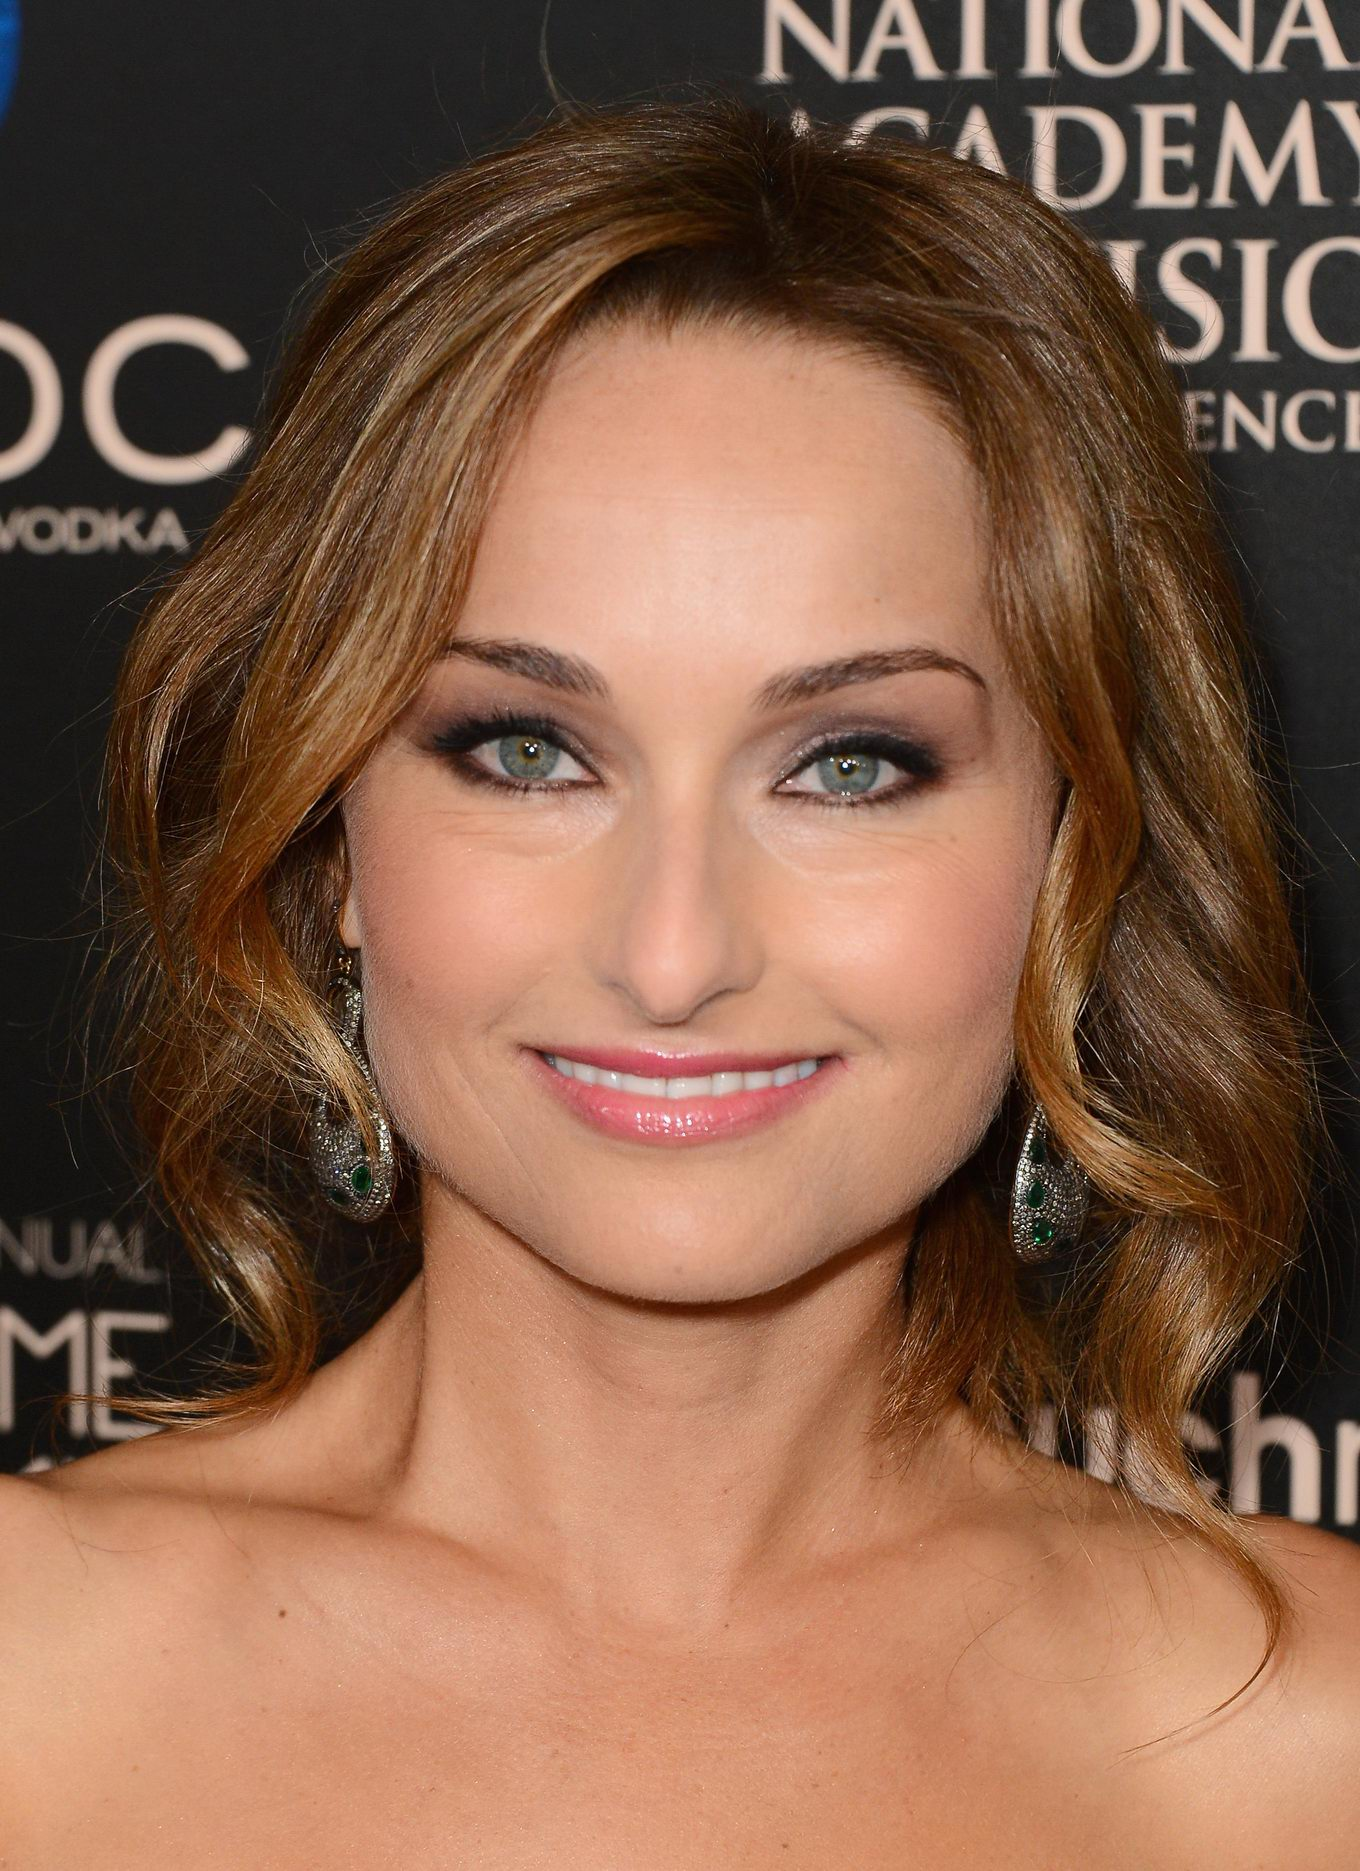 giada de laurentiis nudity pornographic